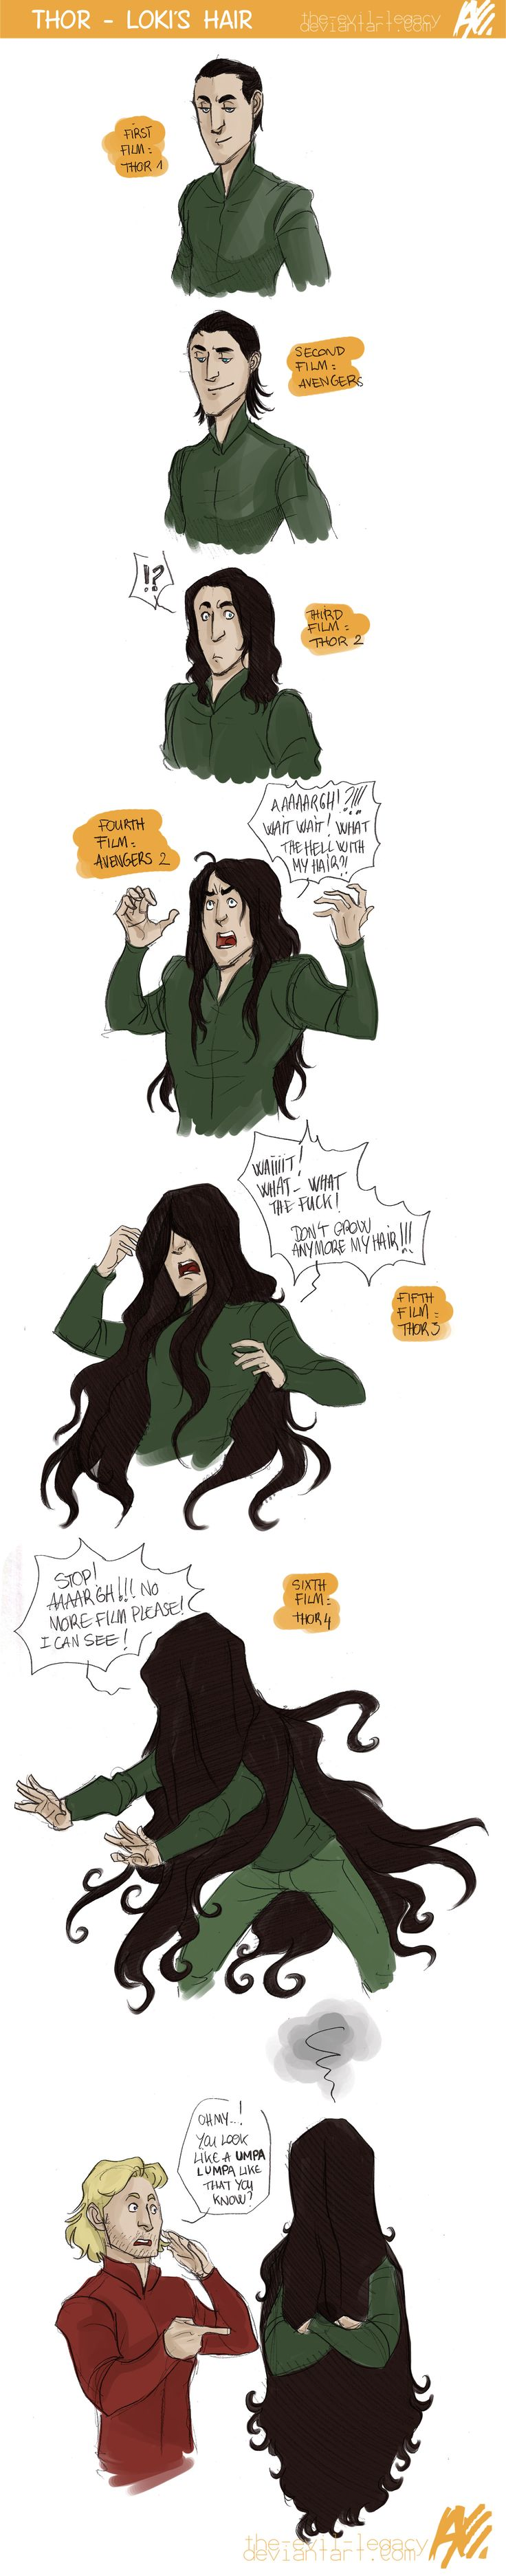 THOR - Lokis hair by ~the-evil-legacy on deviantART.  Honestly, I'm not gonna complain.